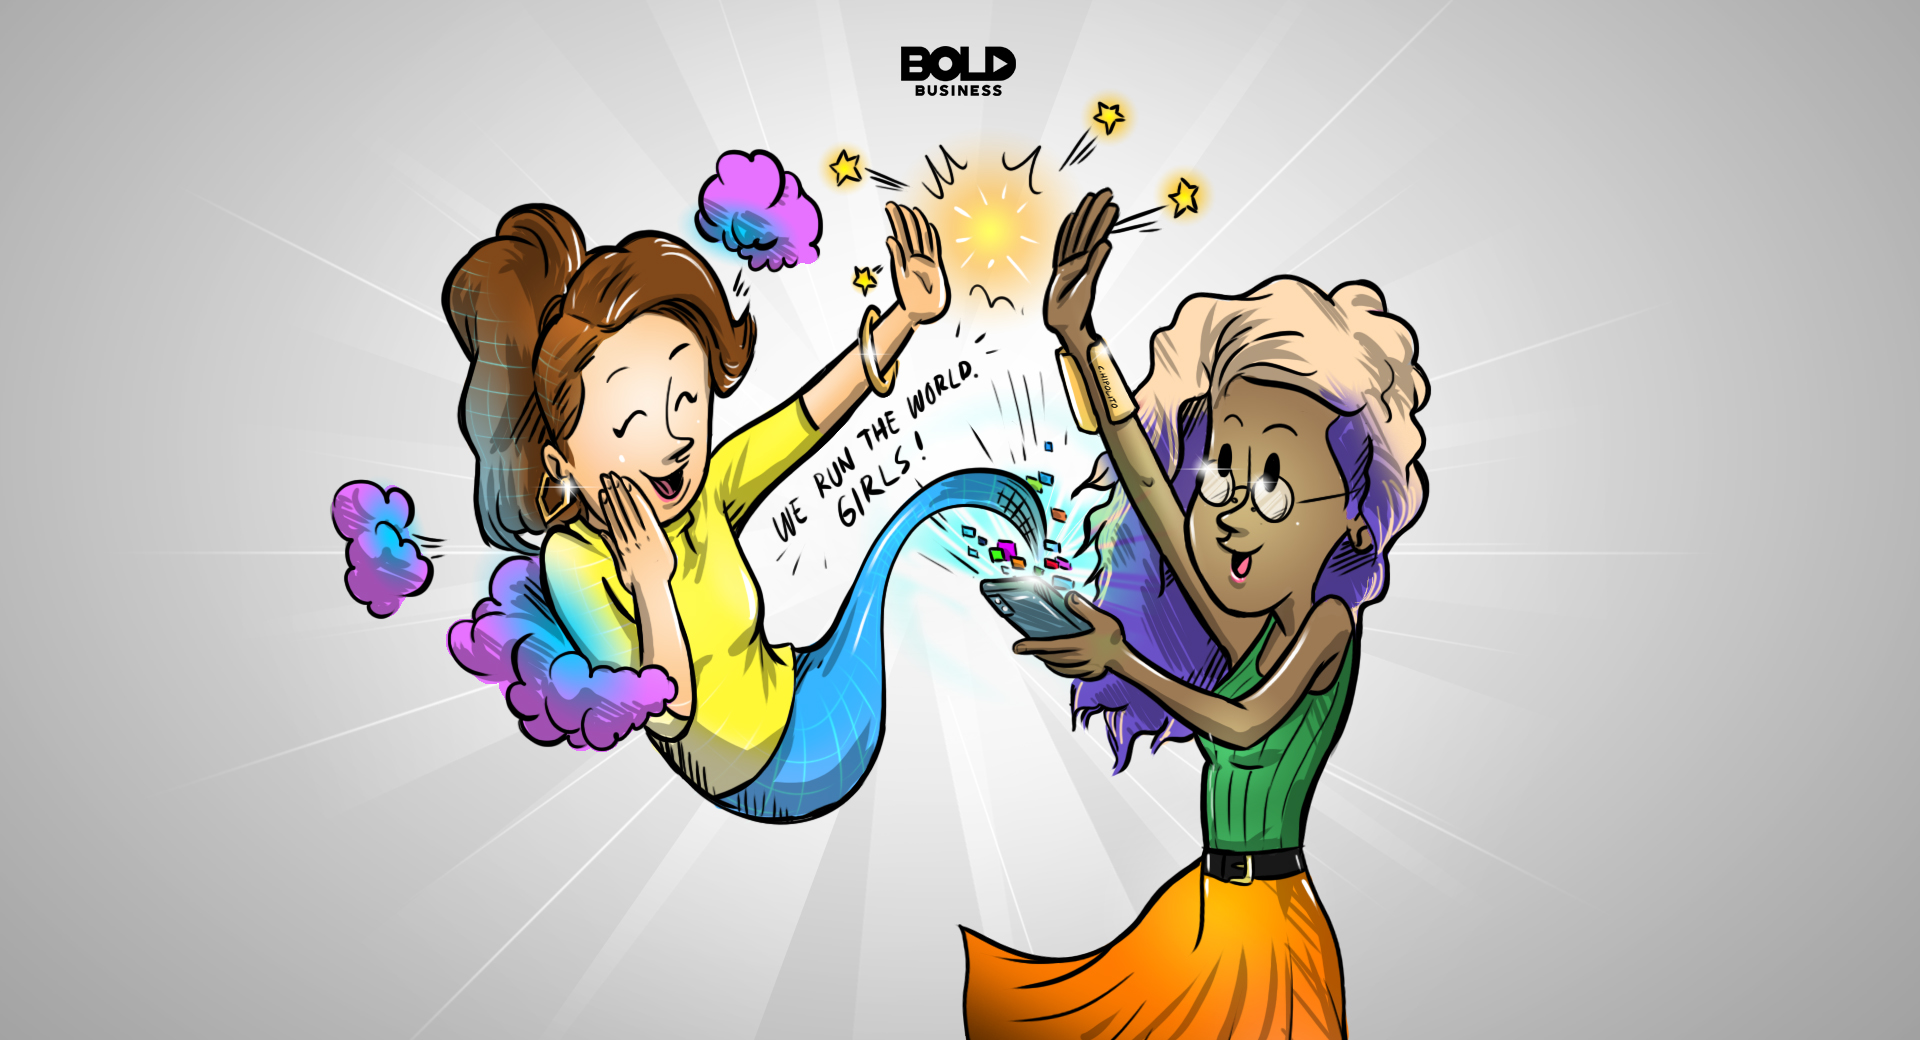 cartoon of a woman looking at female health apps on her phone while a female genie rises from the phone and high-fives her